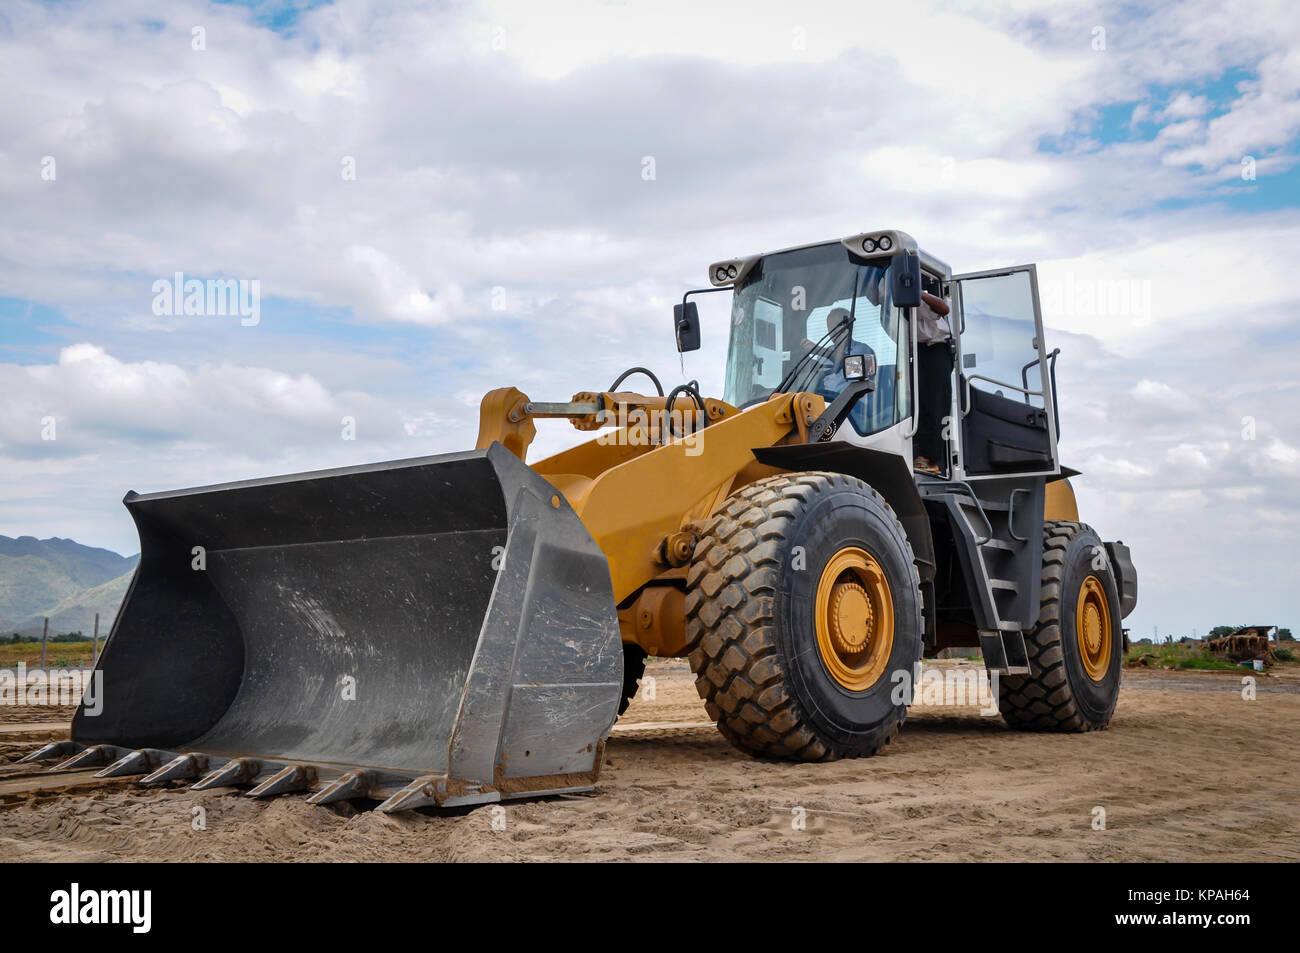 landscape photo of wheel loader in construction site with cloudy sky - Stock Image